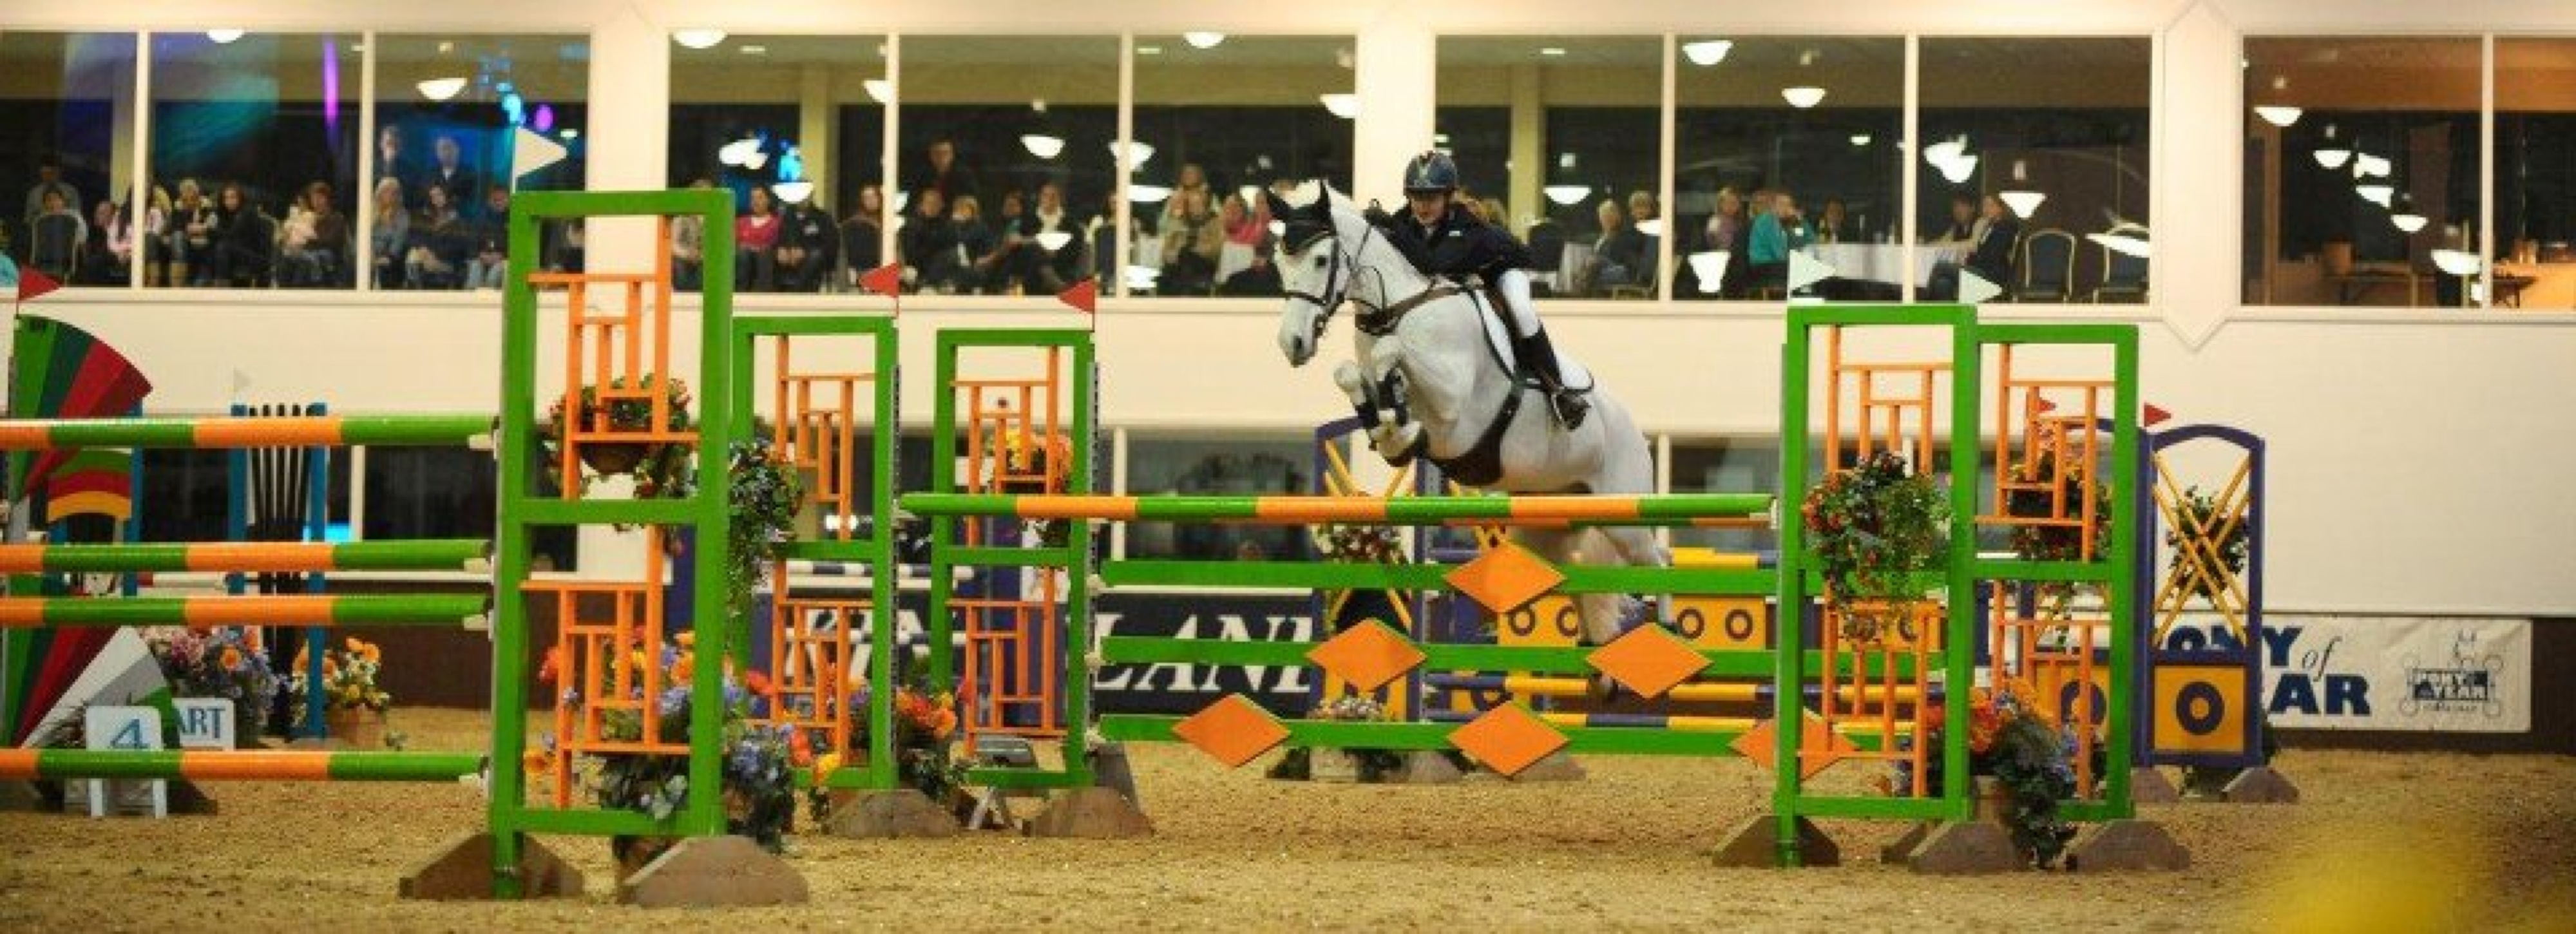 POYS - Sponsorship News From Verdo Horse Bedding